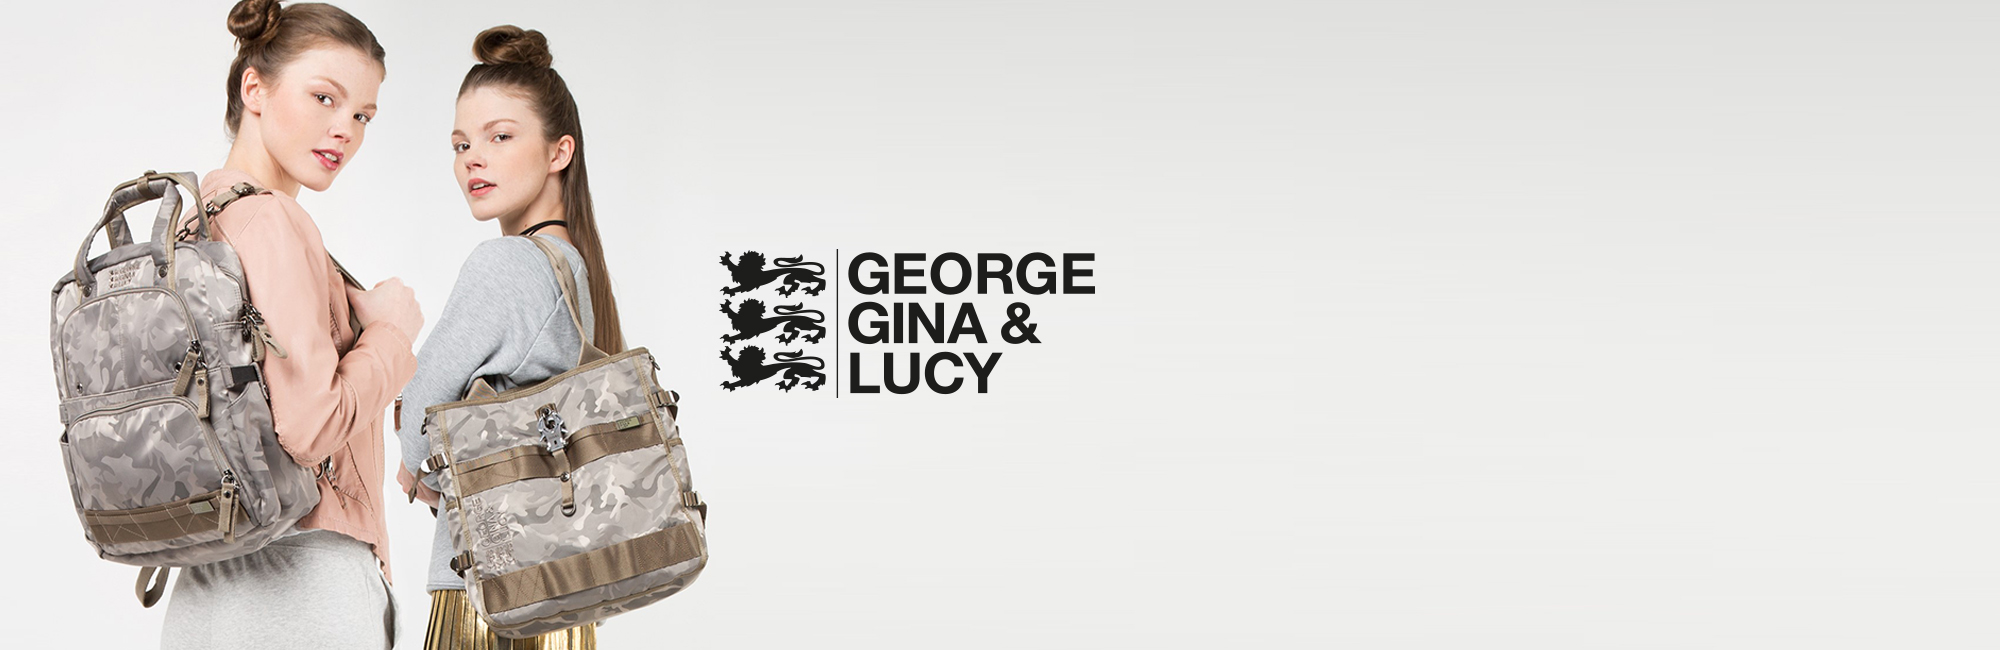 George Gina & Lucy